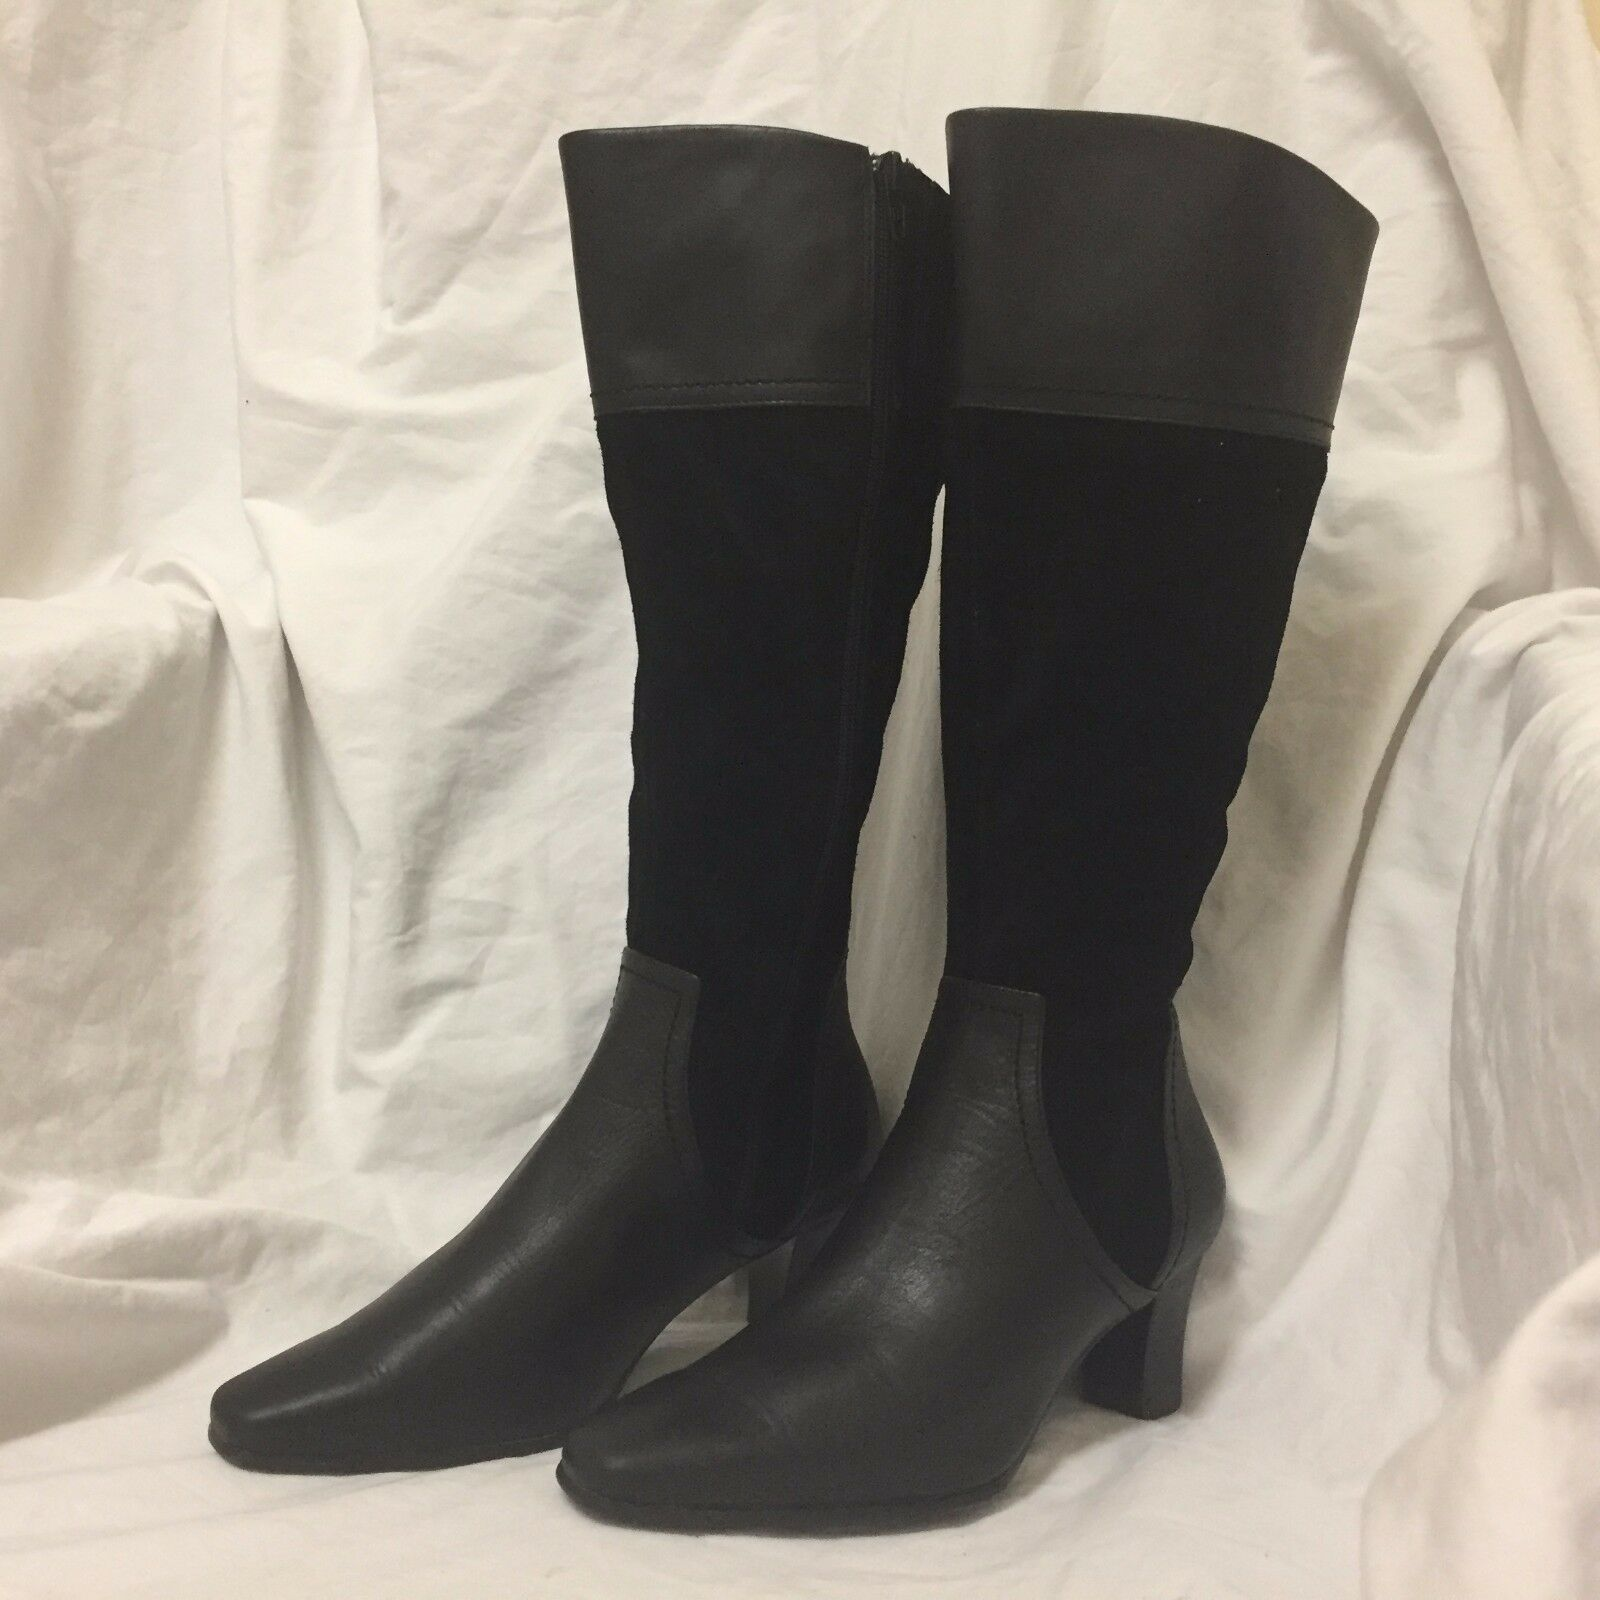 David Tate Women's Black Leather & Suede Knee High Boots Sz 6